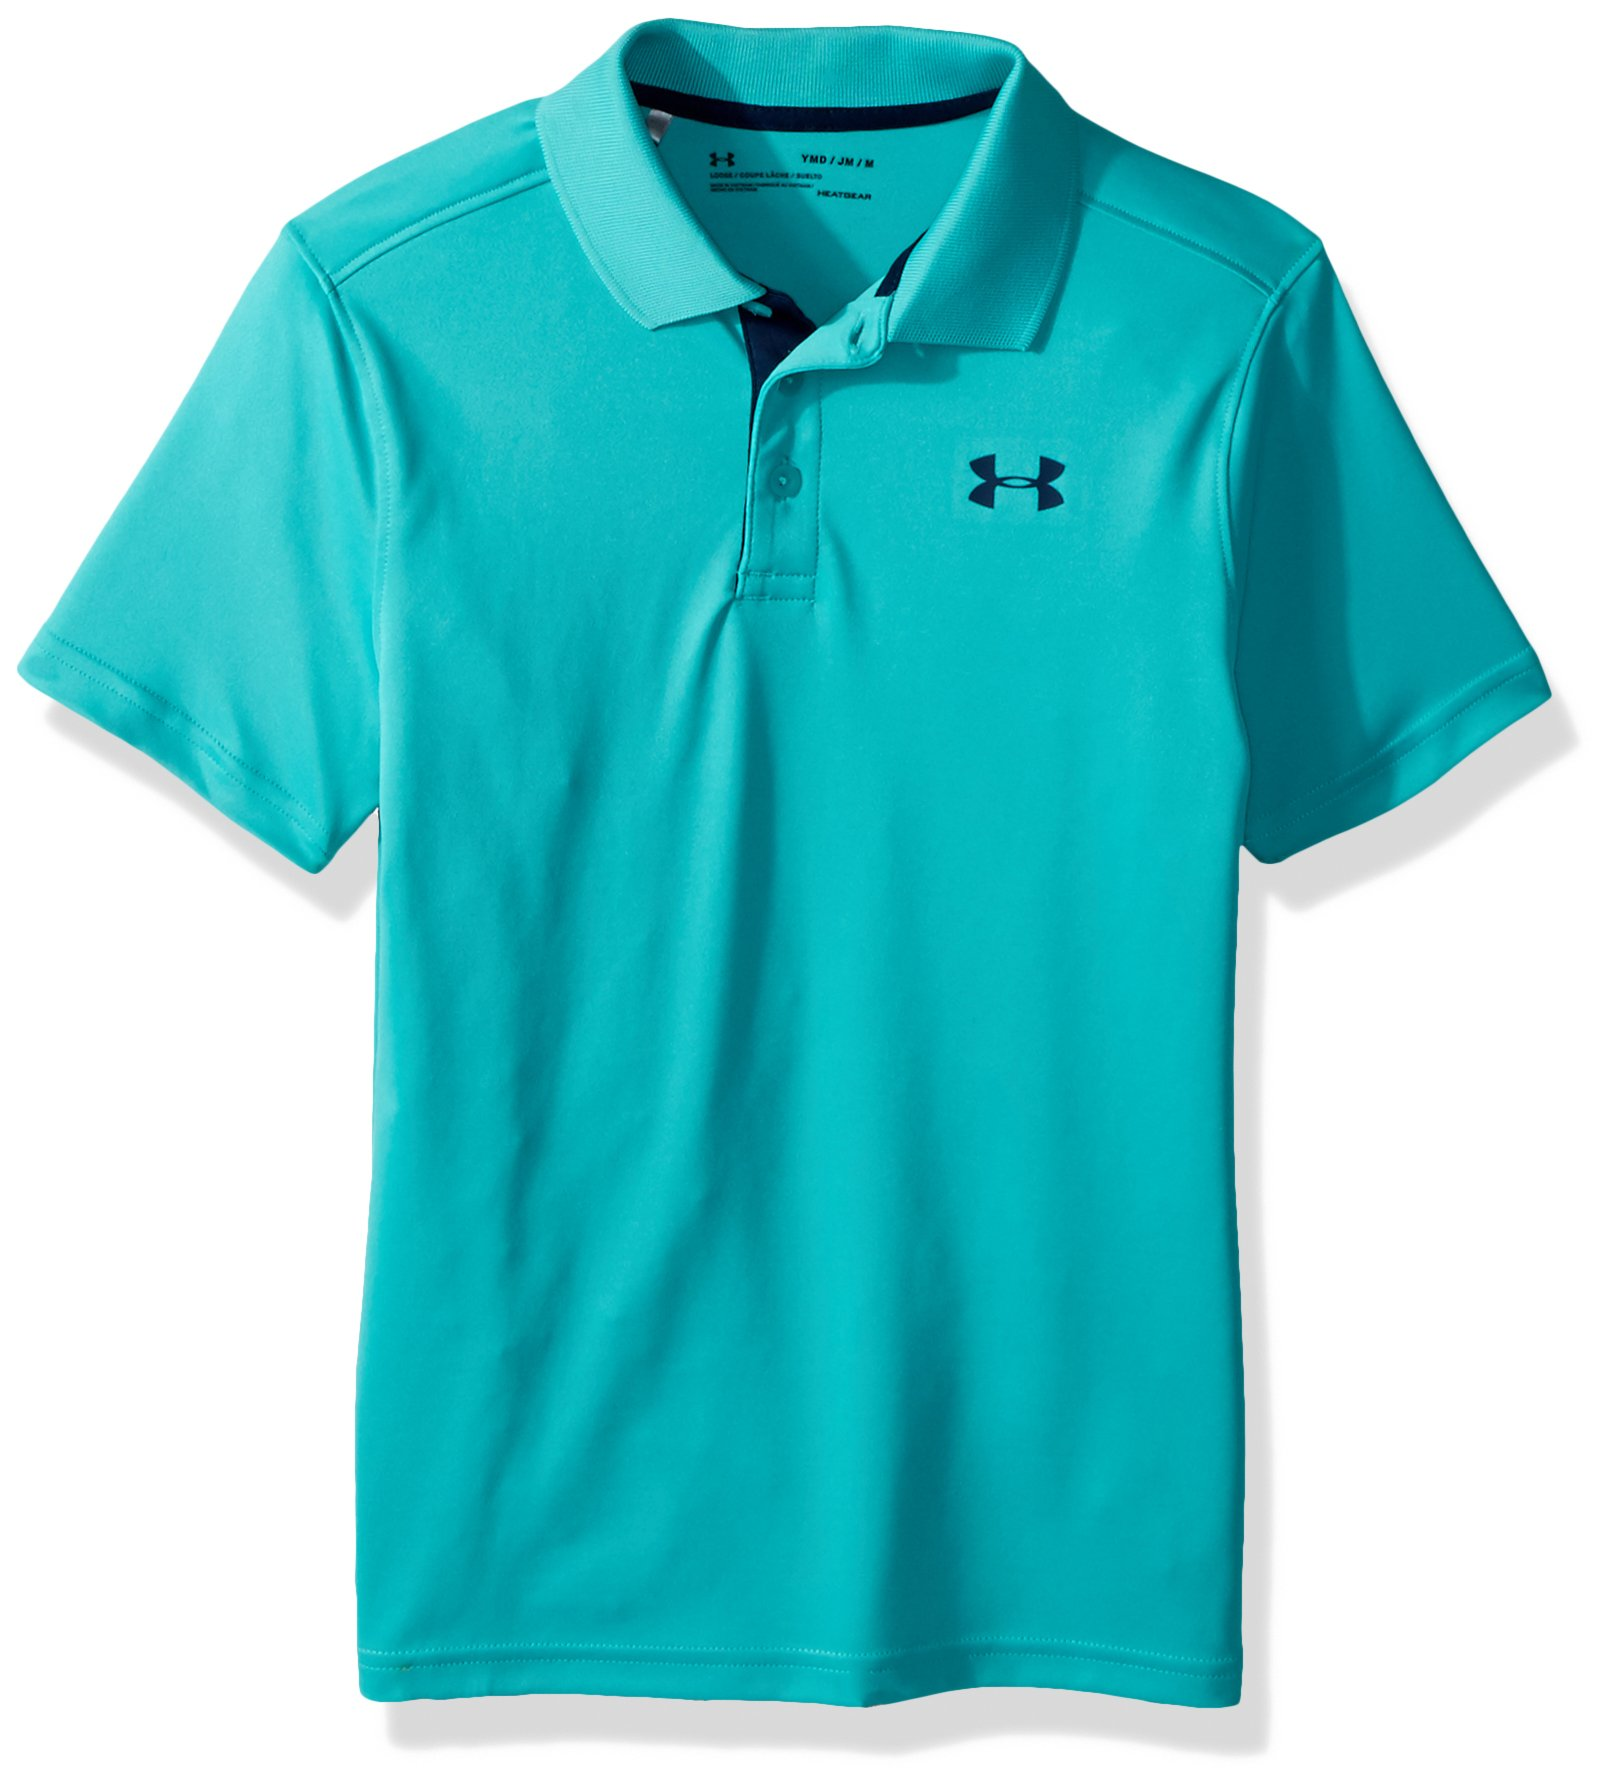 Under Armour Boys' Performance Polo, Teal Punch (594)/Academy, Youth Small